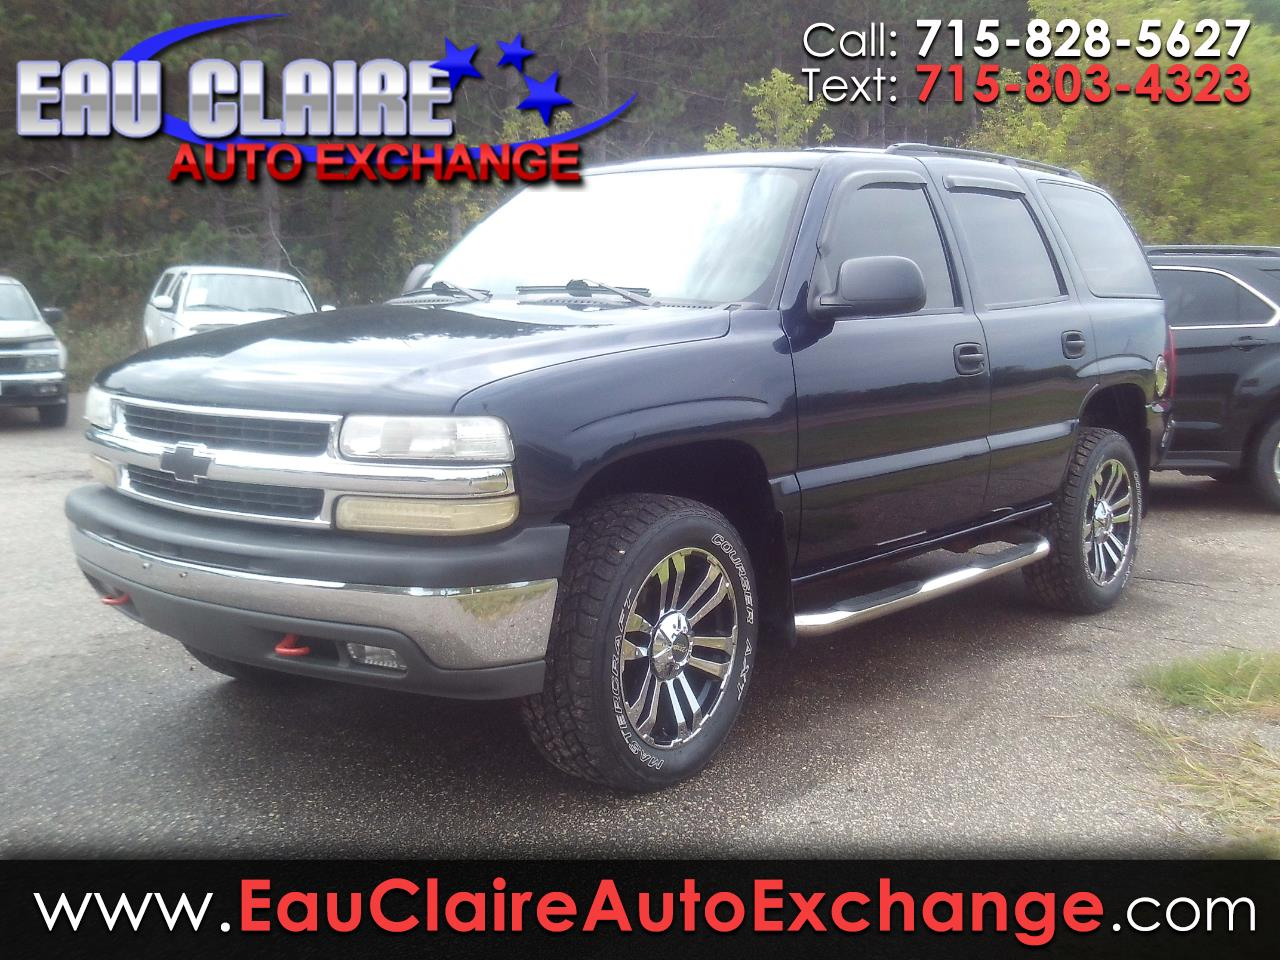 2005 Chevrolet Tahoe Special Service Veh 4dr 4WD